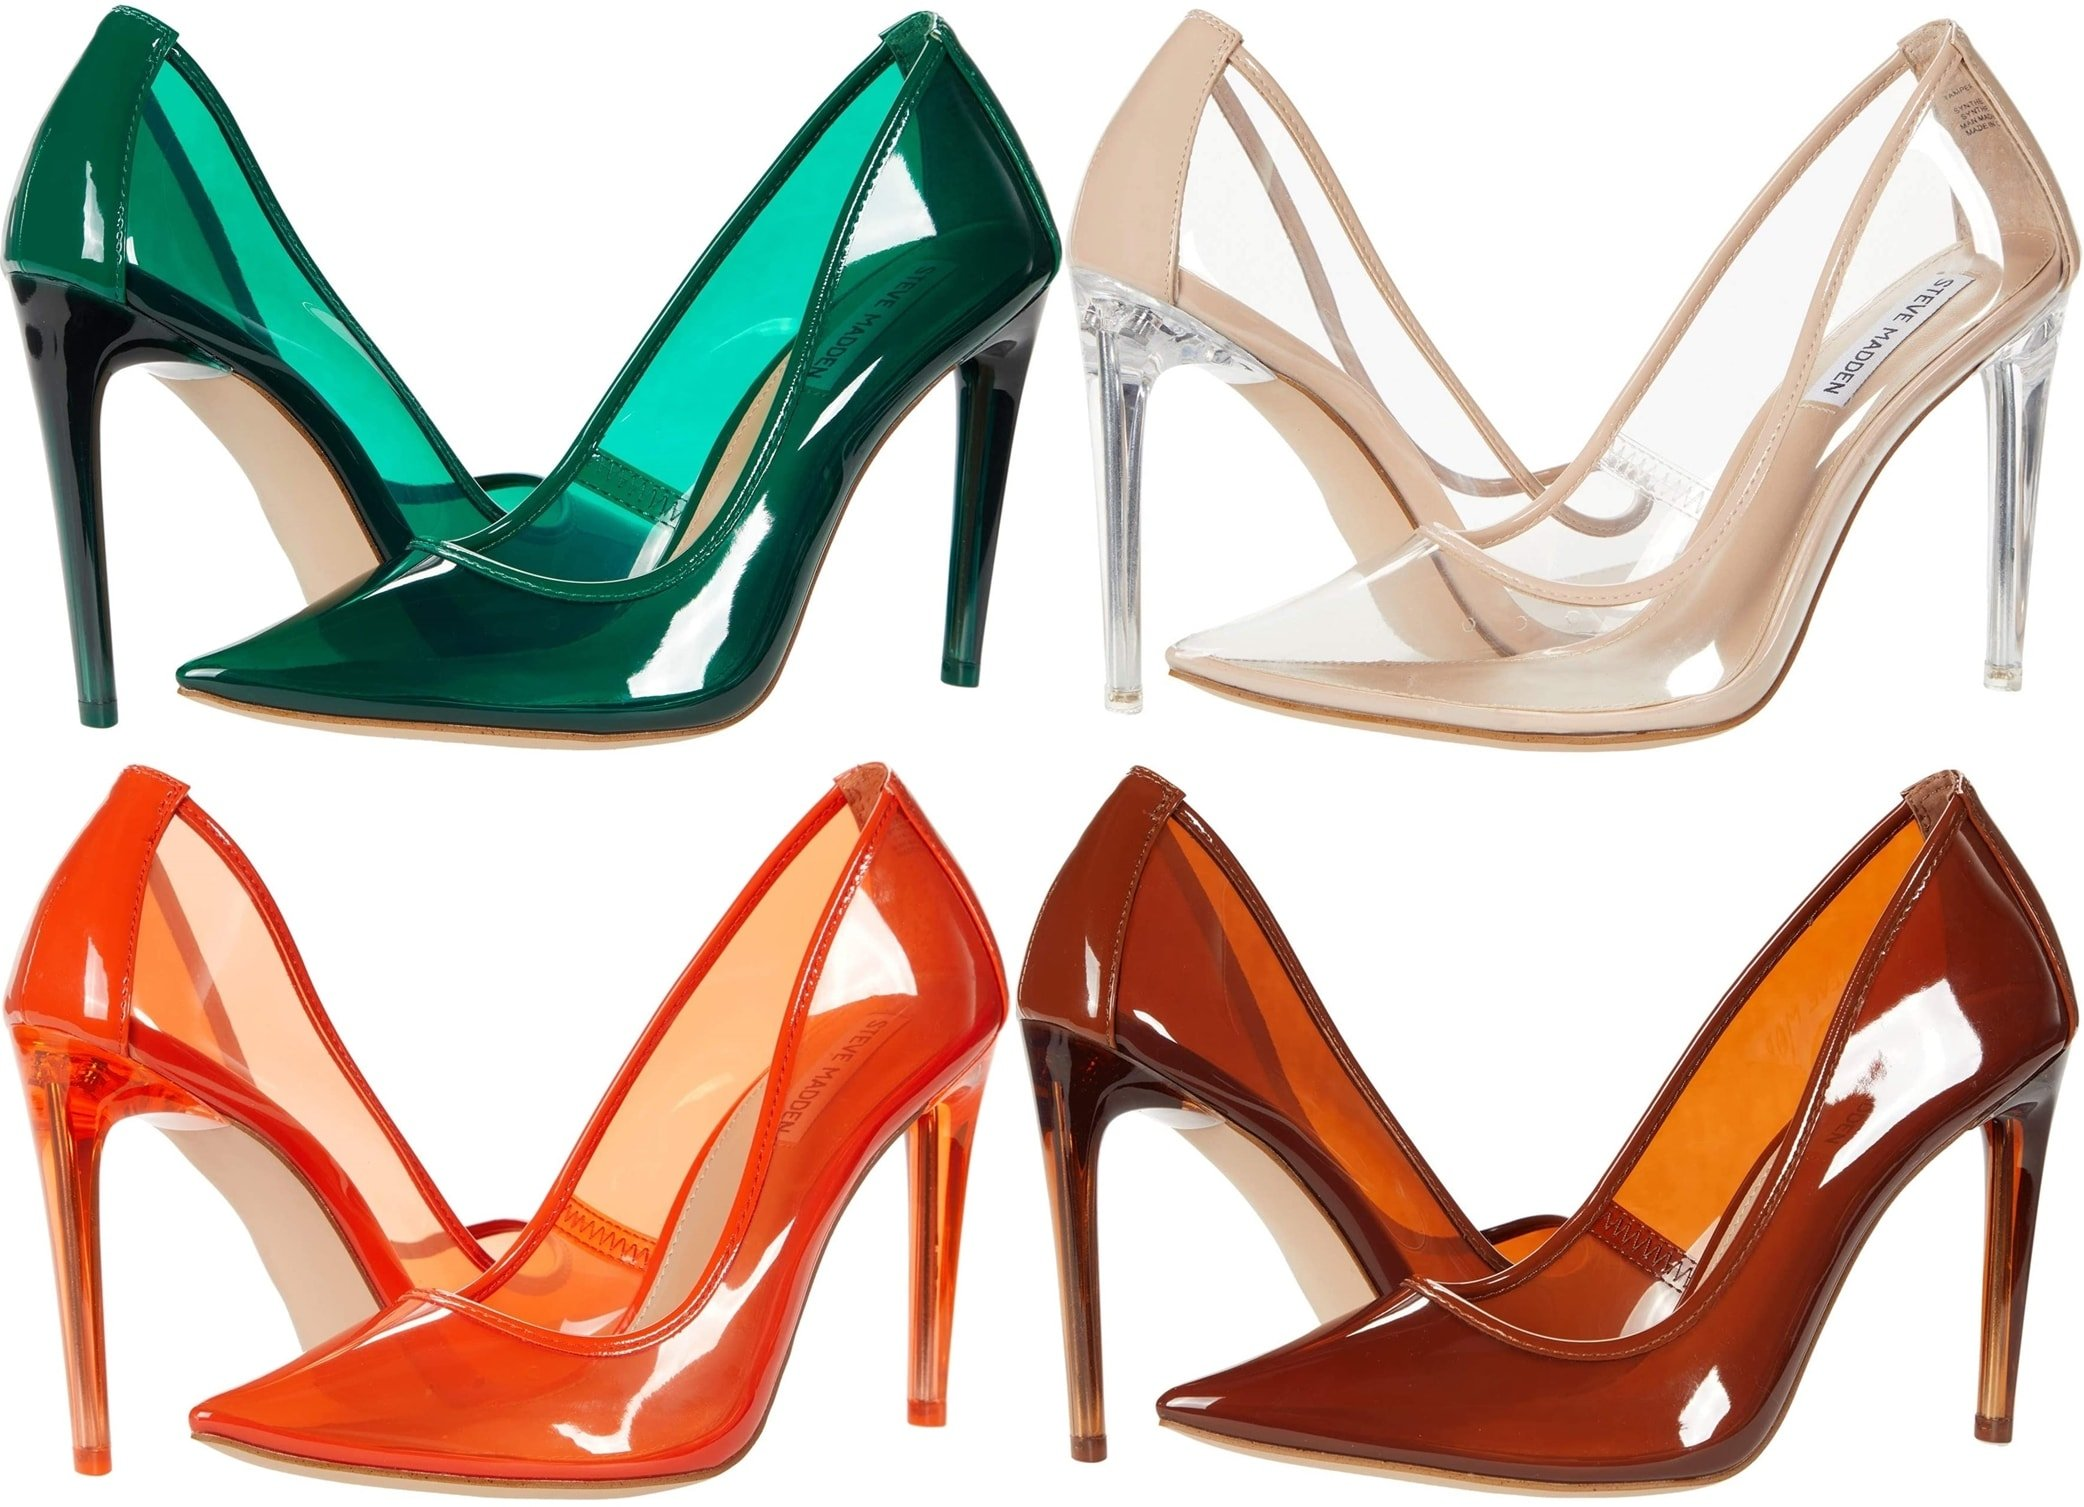 Transparent Steve Madden high heel pumps in orange, green, clear, and tan colors